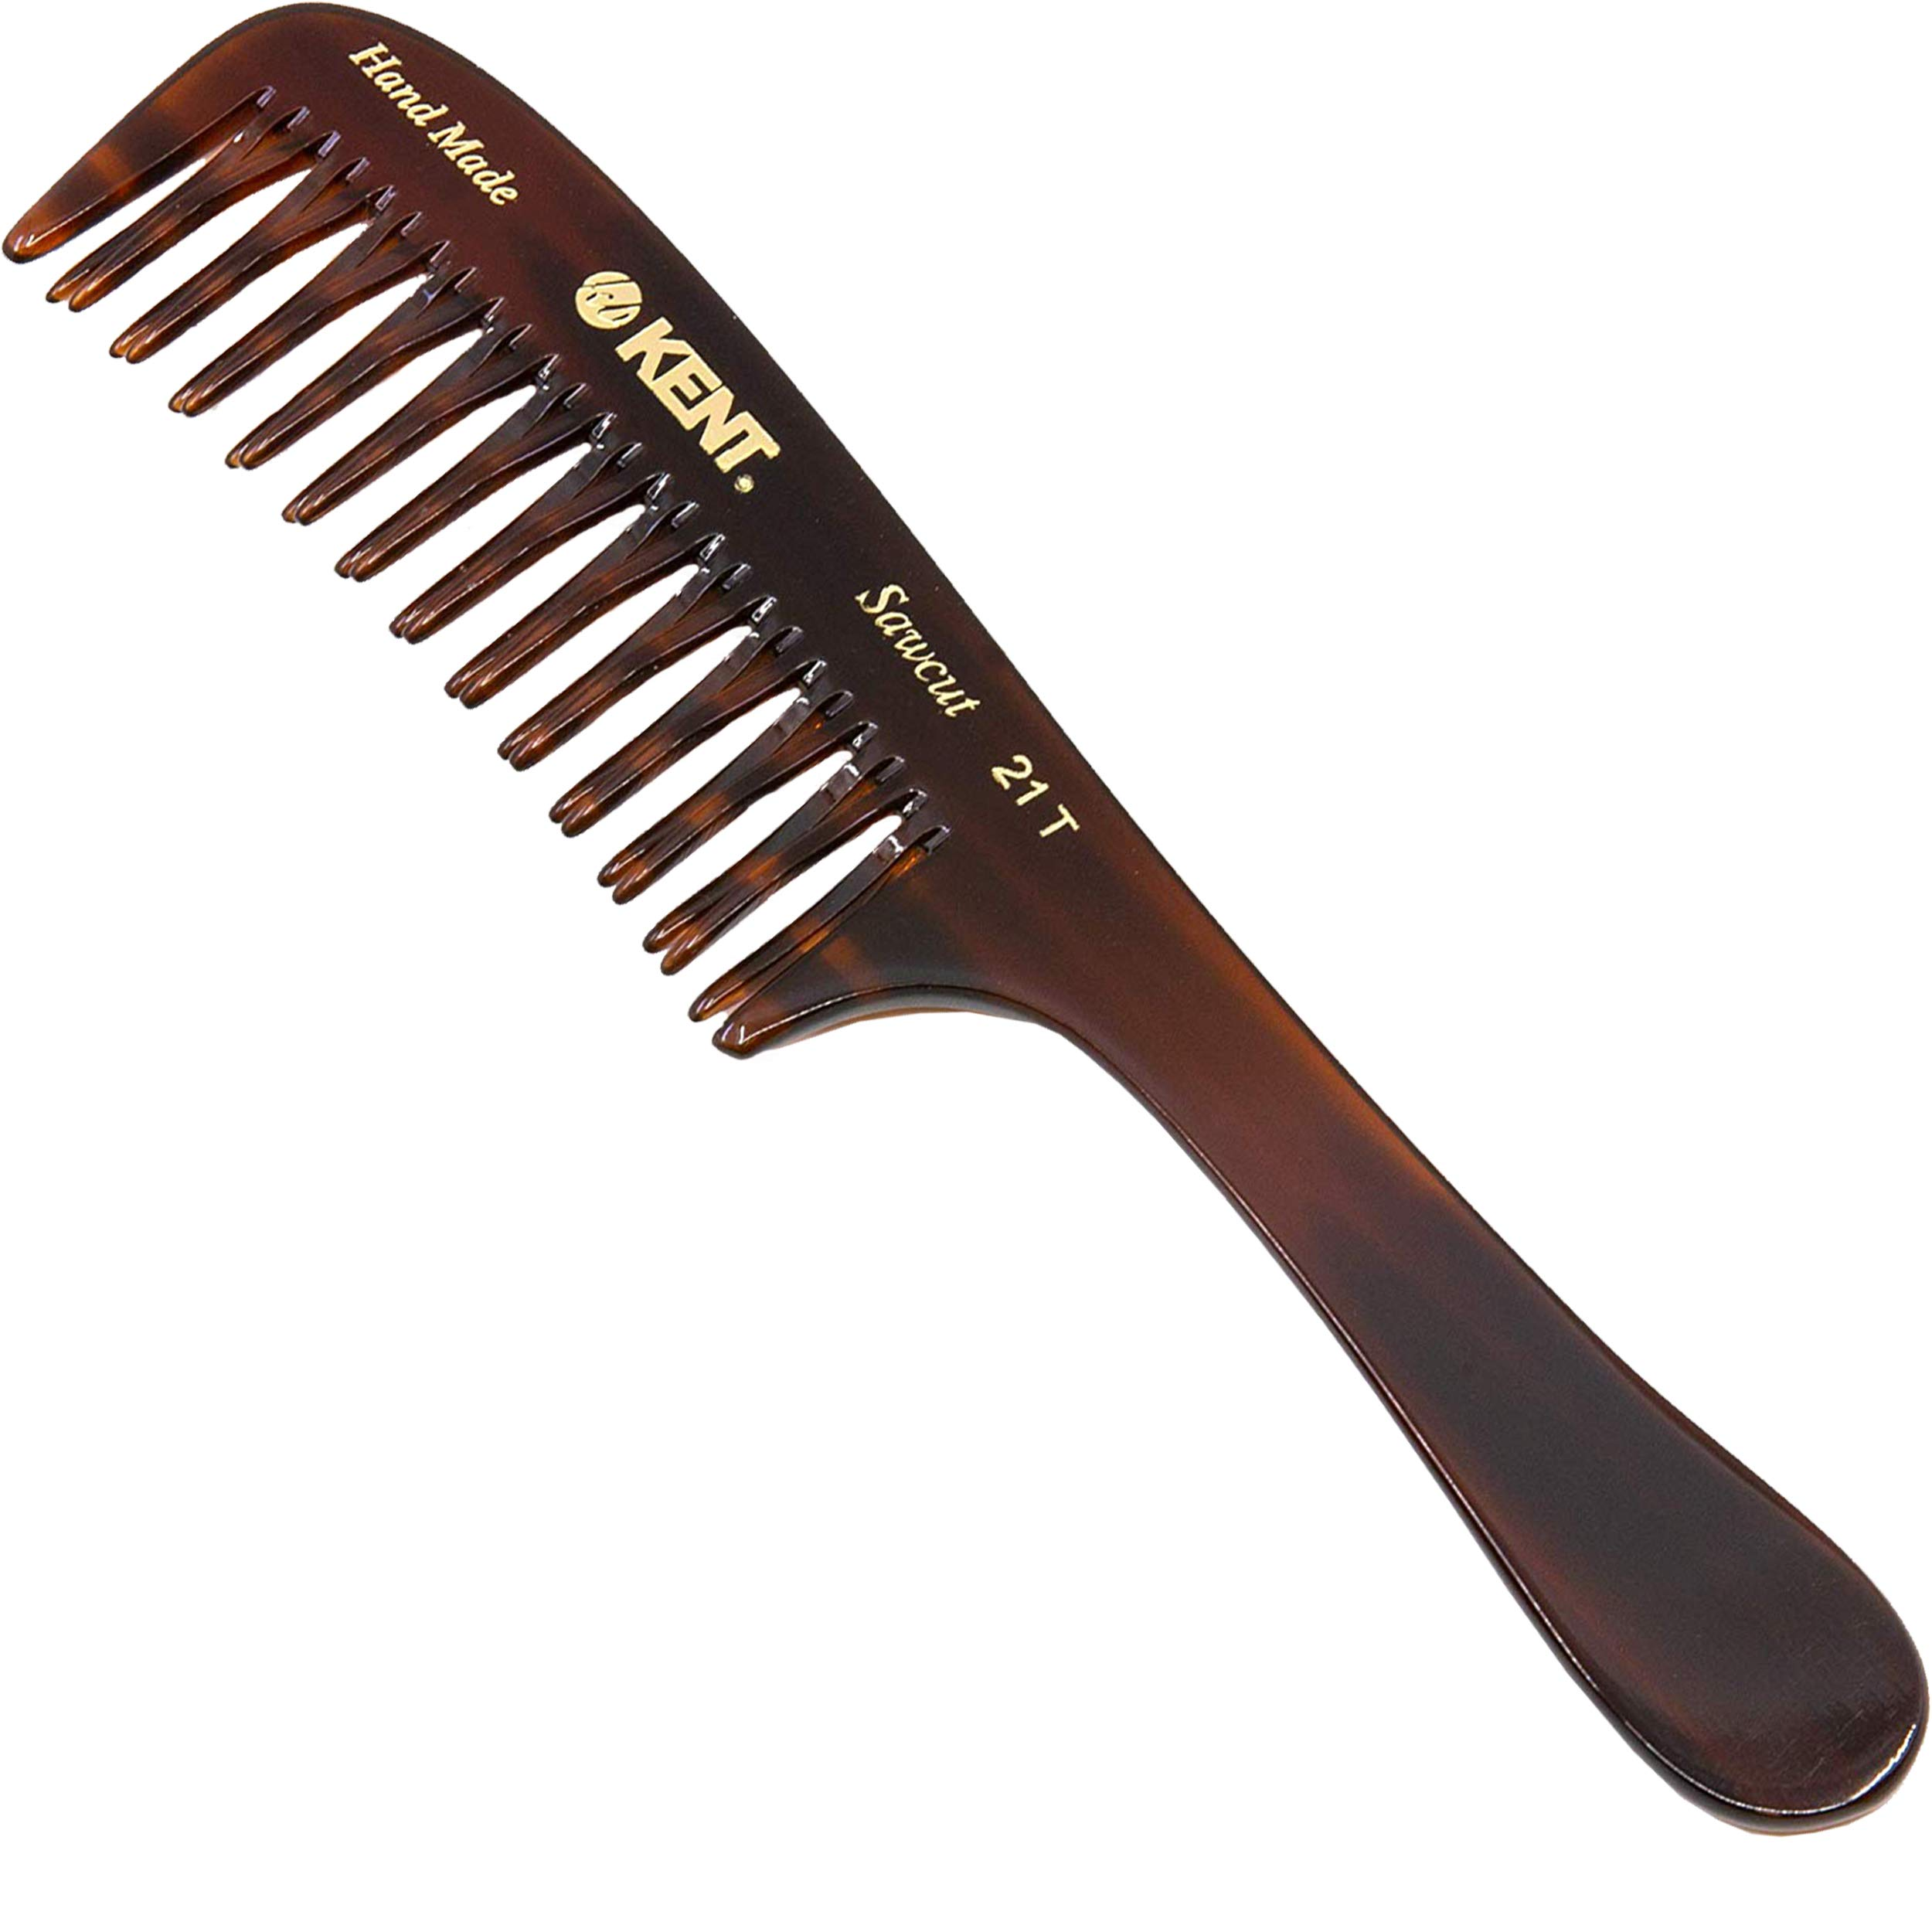 Kent 21T 8 Inch Large Hair Detangling Comb, Wide Teeth for Thick Curly Wavy Hair. Long Hair Detangler Comb For Wet and Dry. Handmade of Quality Cellulose, Saw-Cut Hand Polished, Made in England